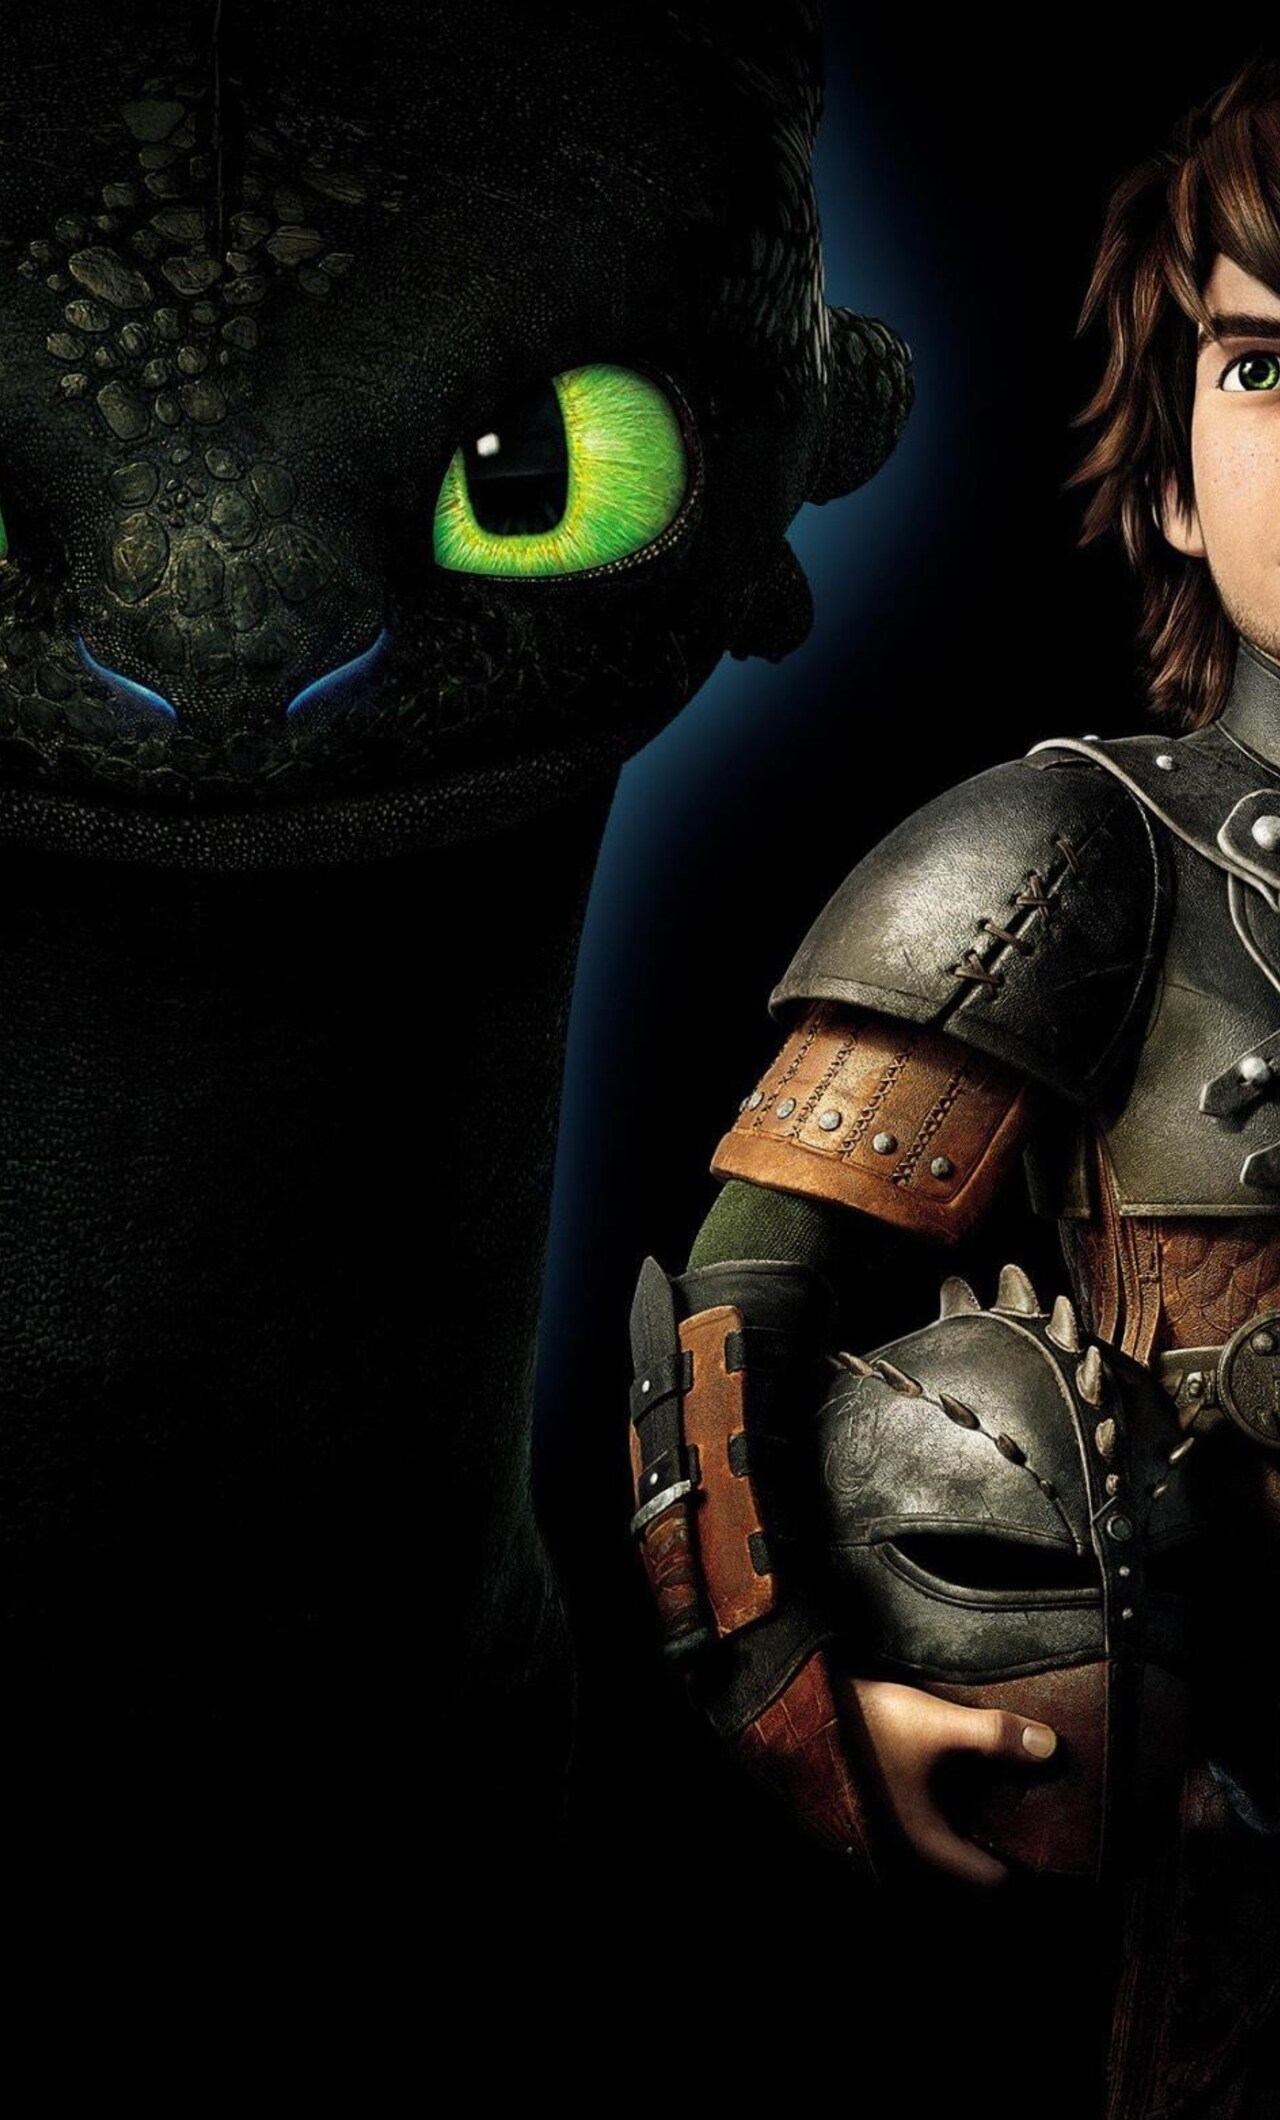 1280x2120 how to train your dragon hd iphone 6 hd 4k - How to train your dragon hd download ...